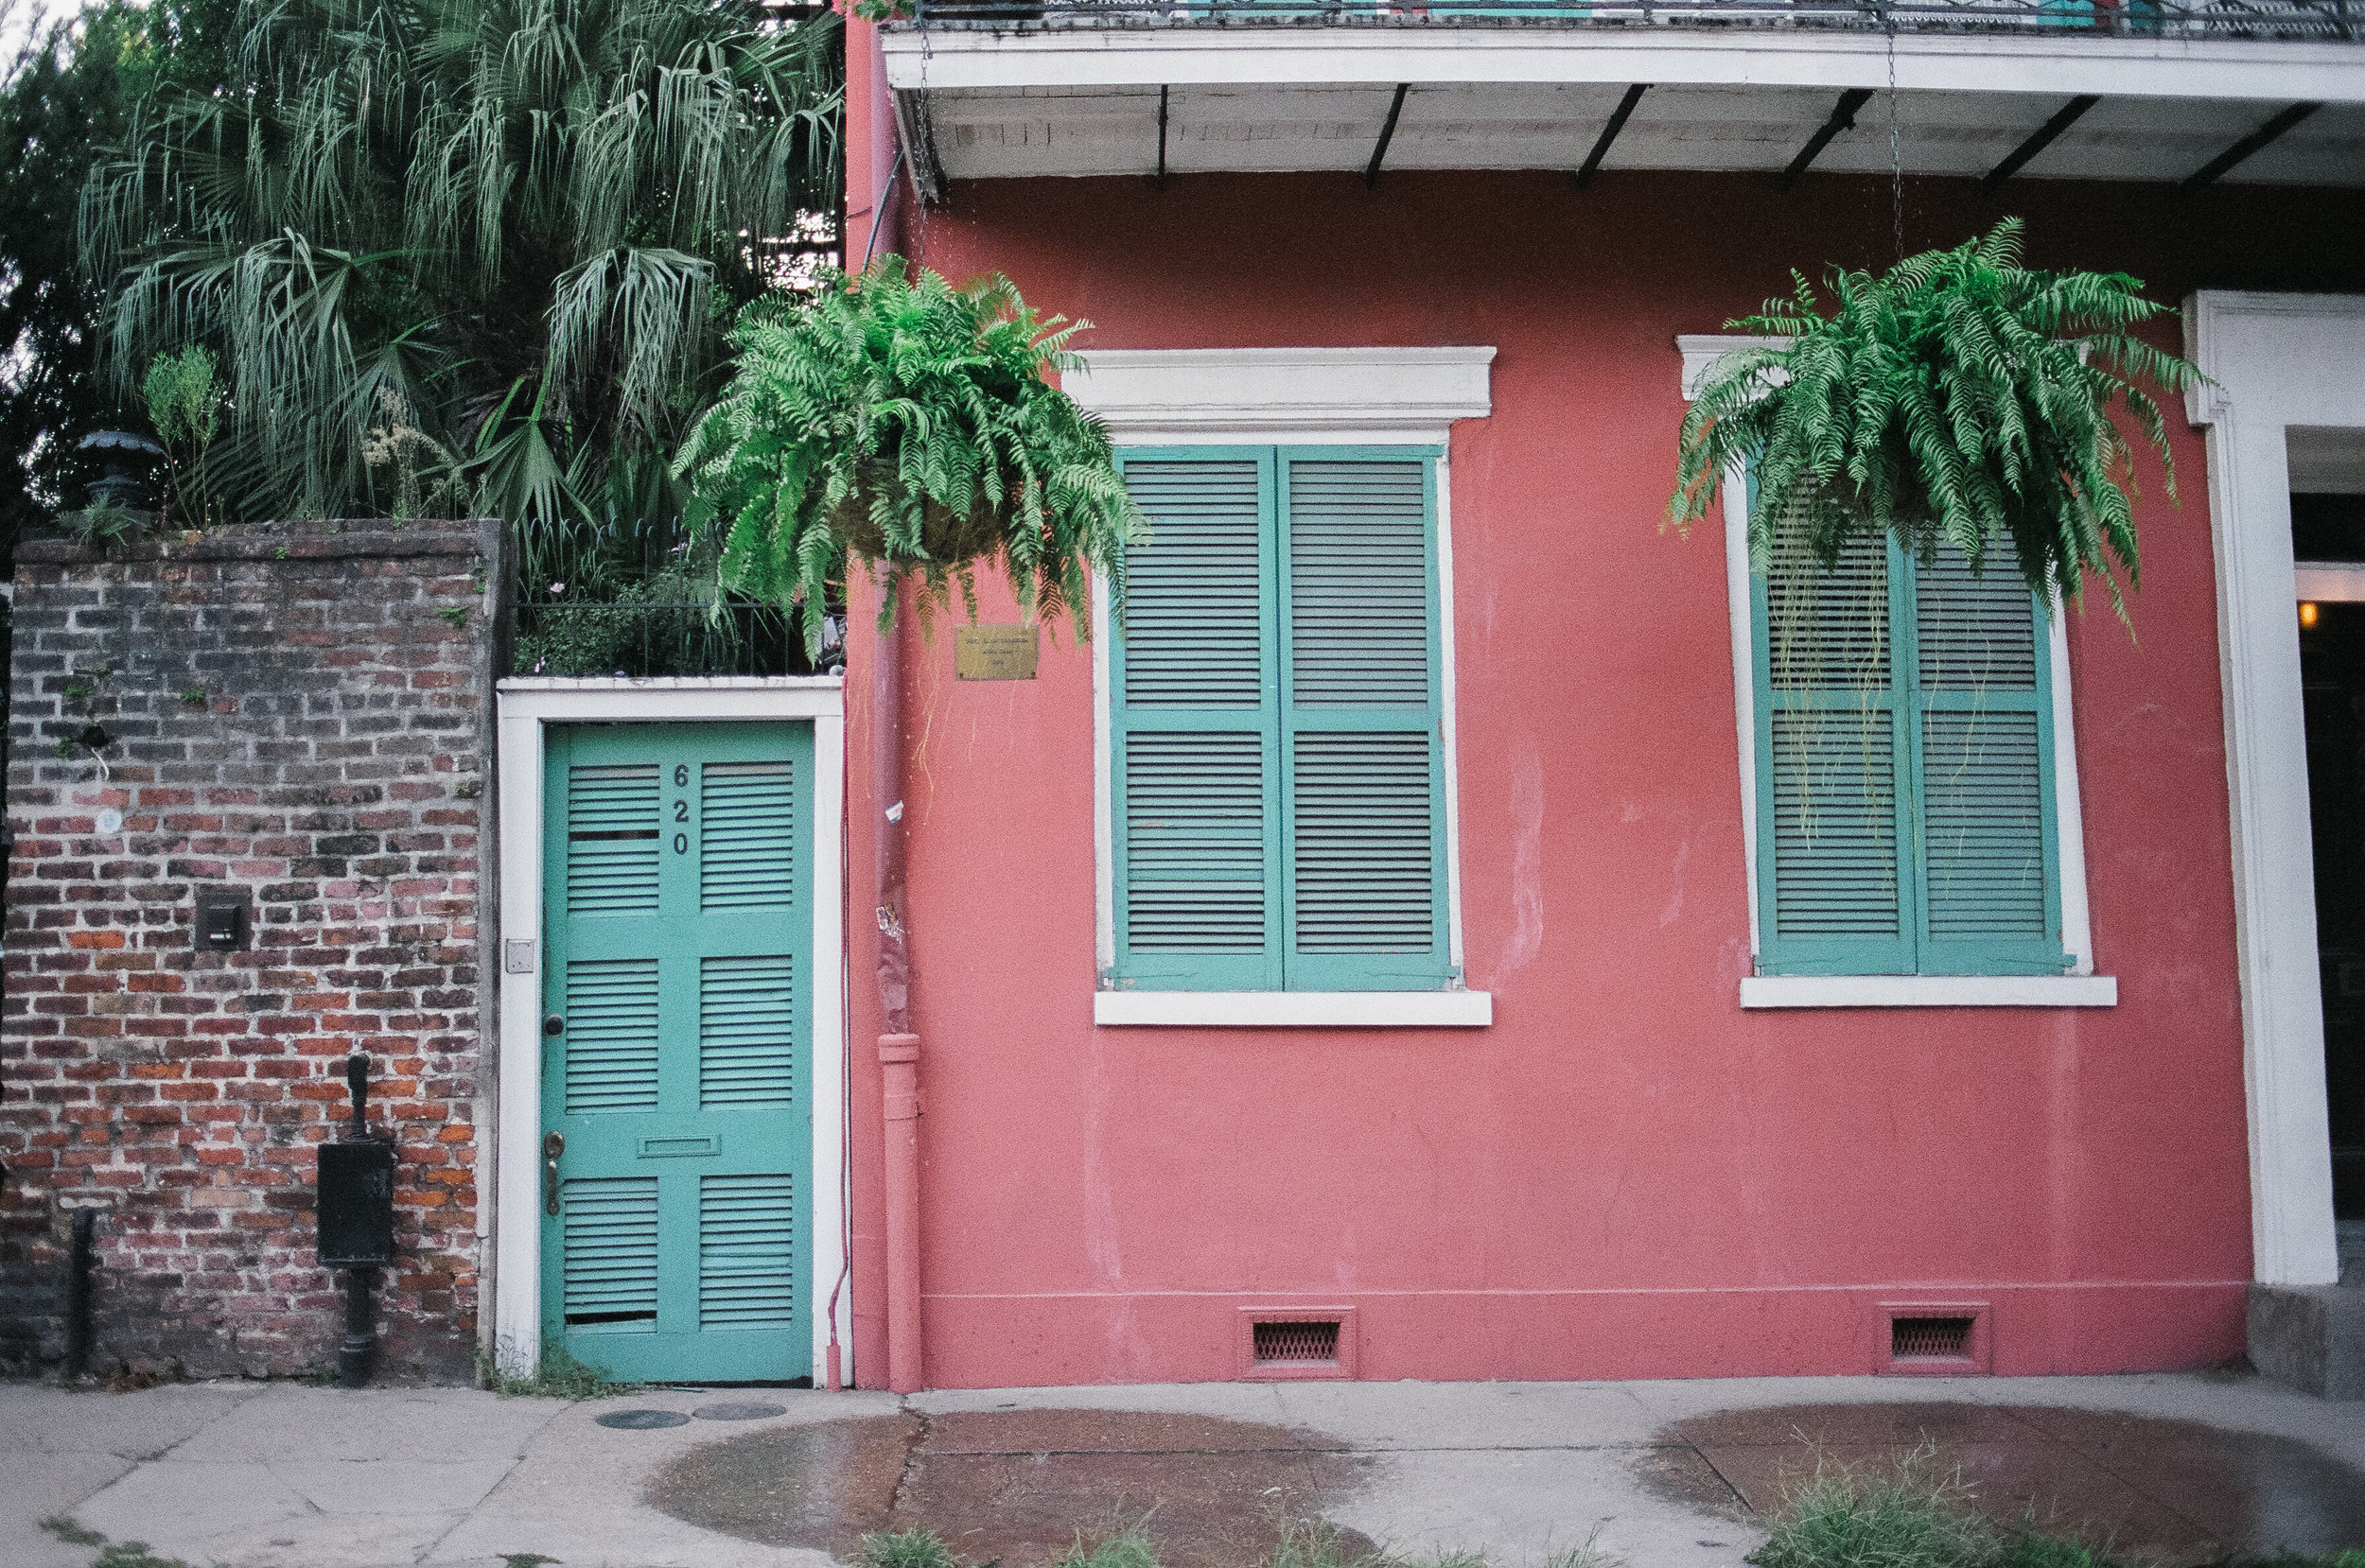 french quarters new orleans fuji400h